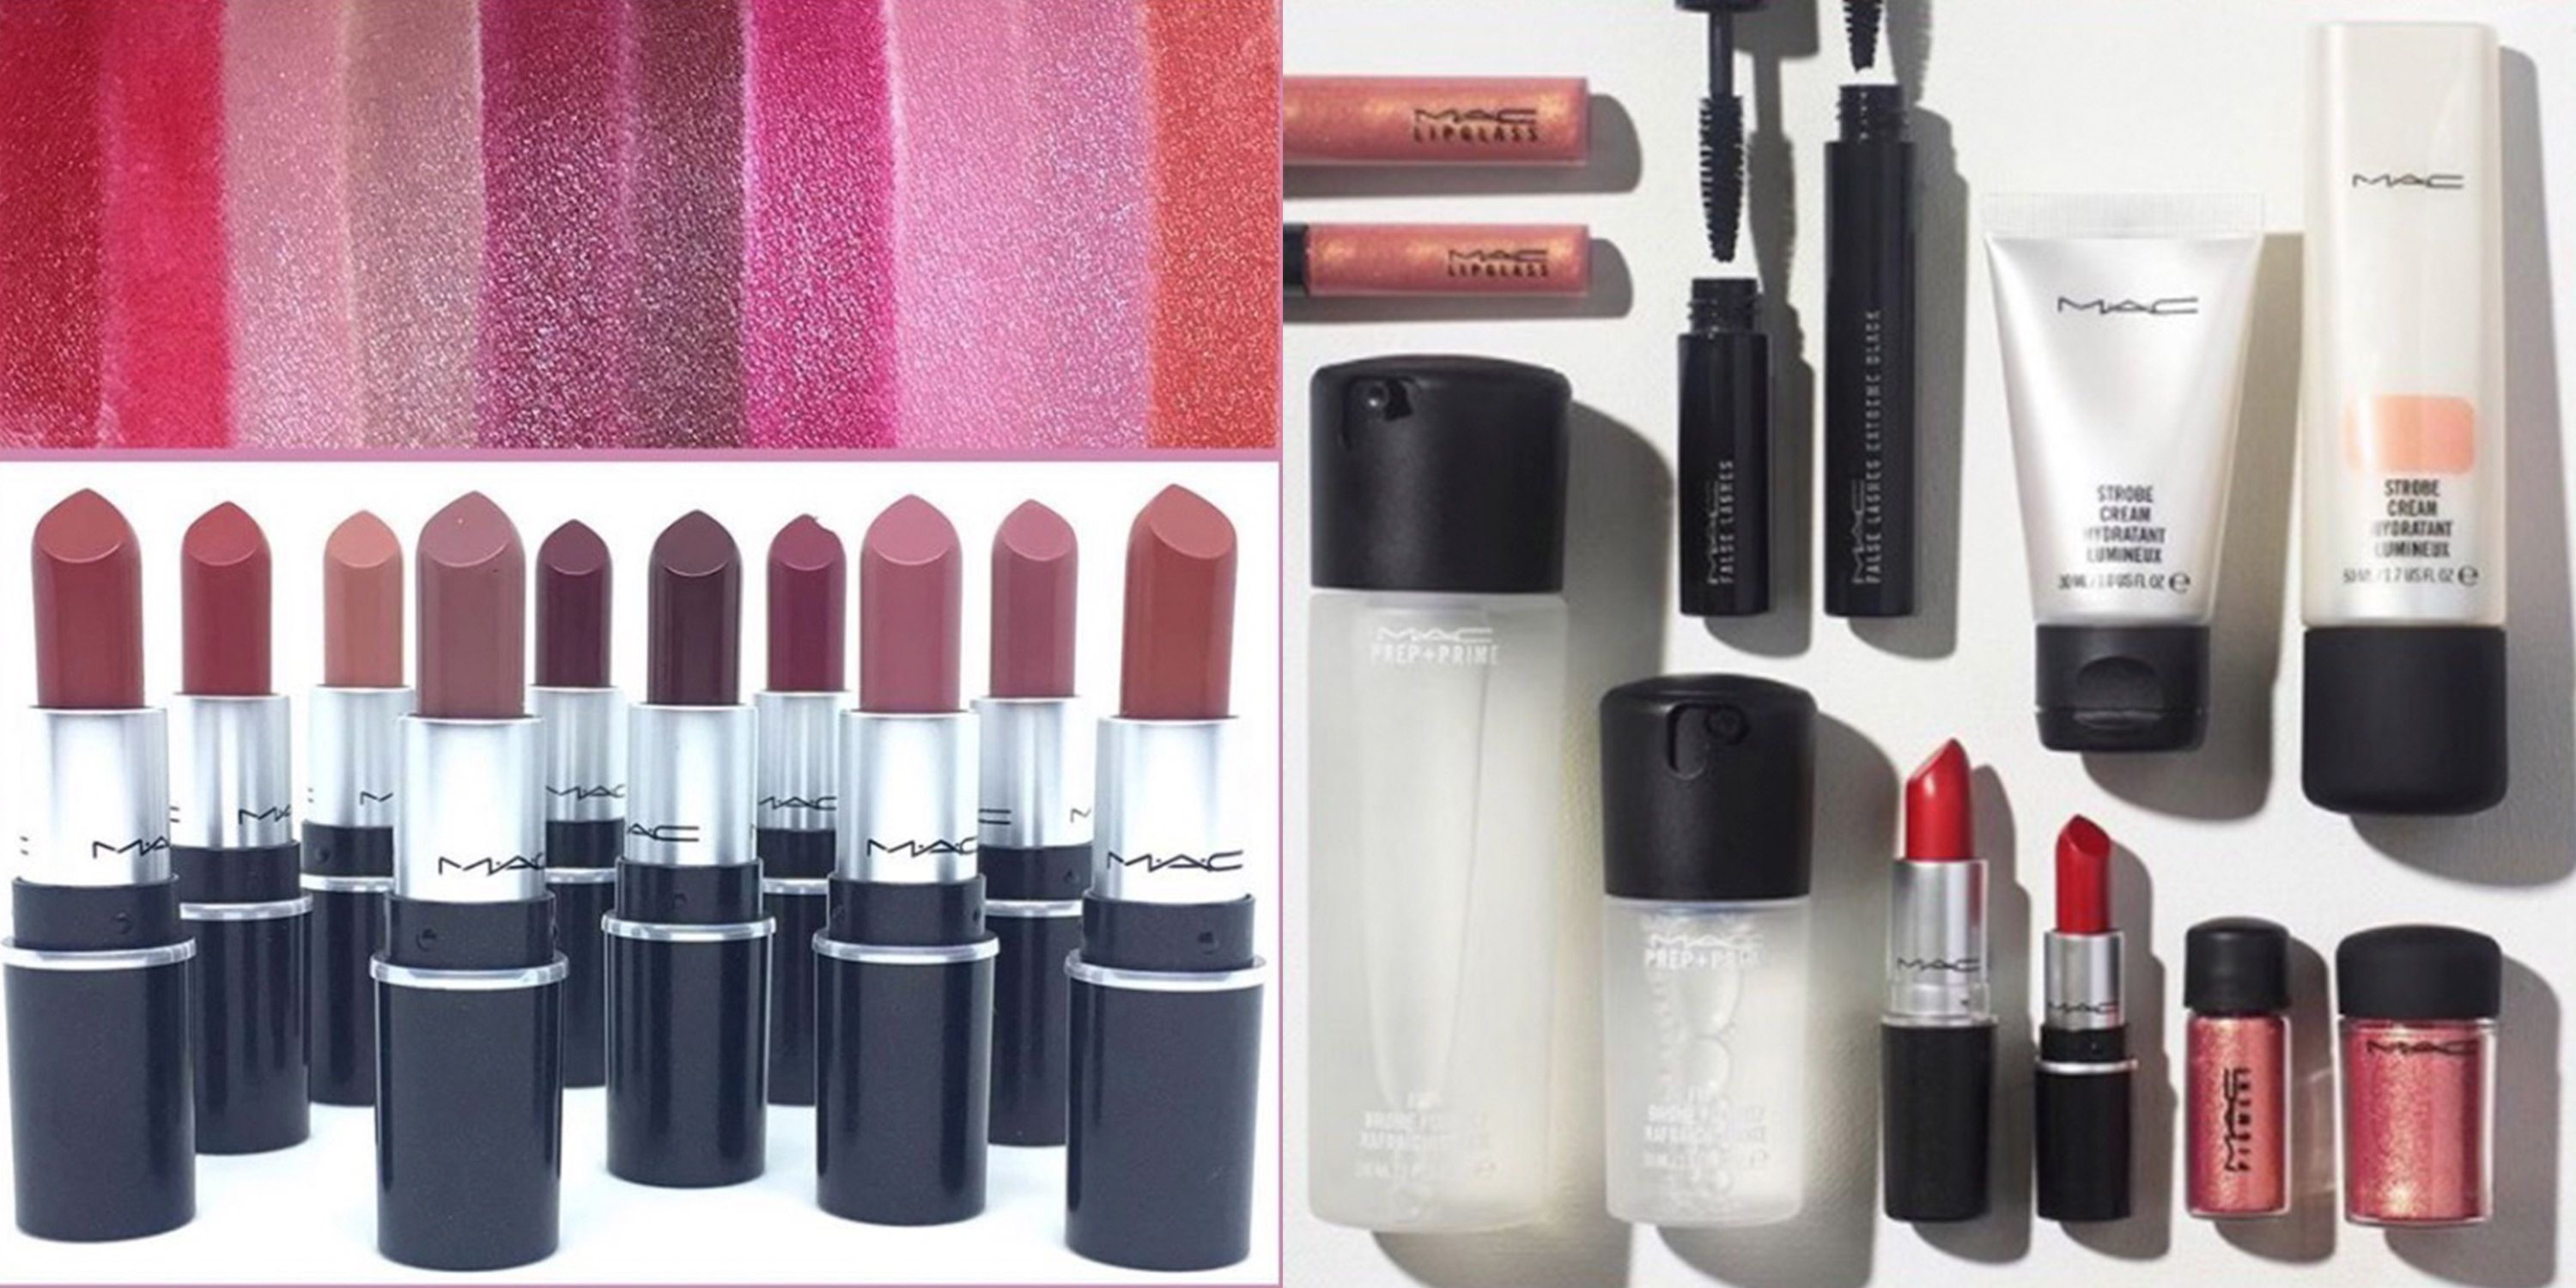 More from Mac Cosmetics